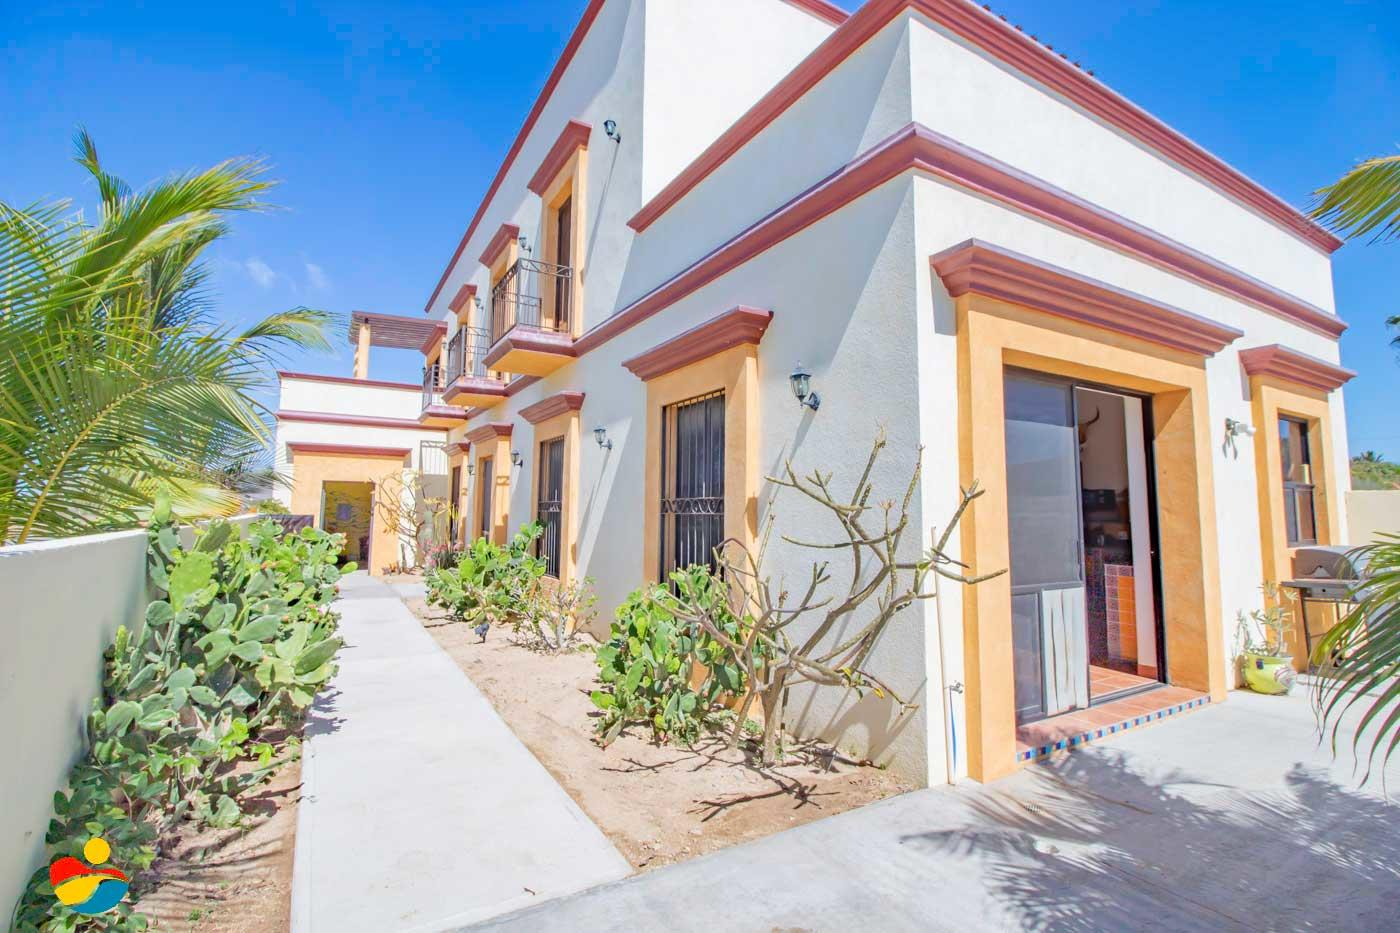 Pacific, 3 Bedrooms Bedrooms, ,5 BathroomsBathrooms,House,For Sale,Calle sin Nombre,19-413